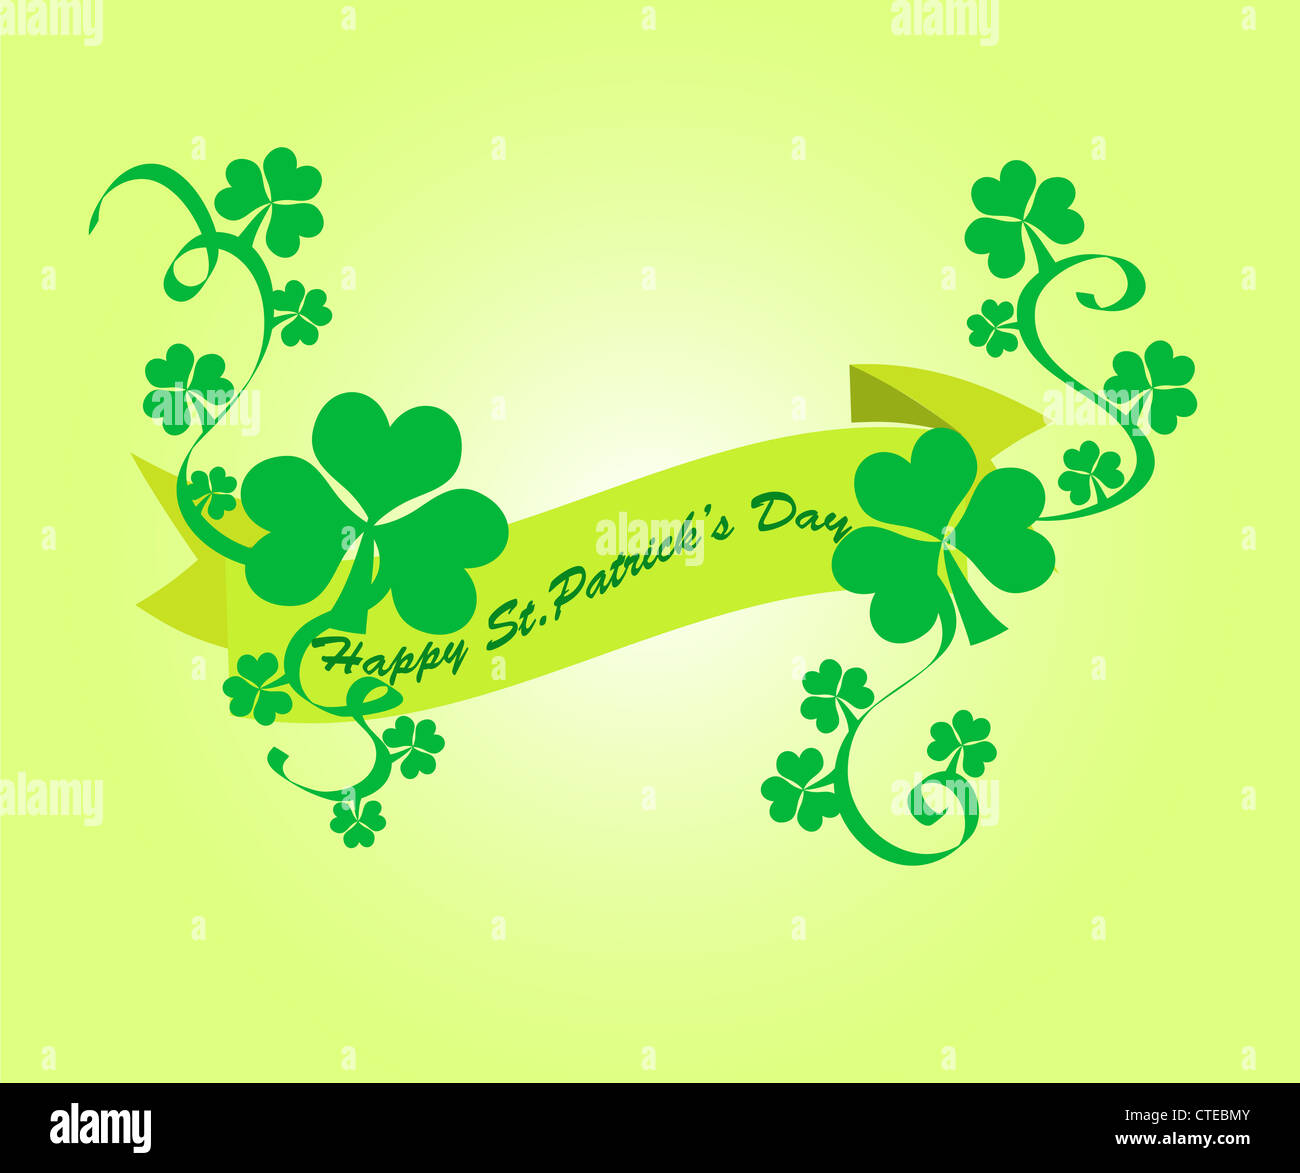 Green shamrocks banner with Happy St.Patric's Day wishes Stock Photo